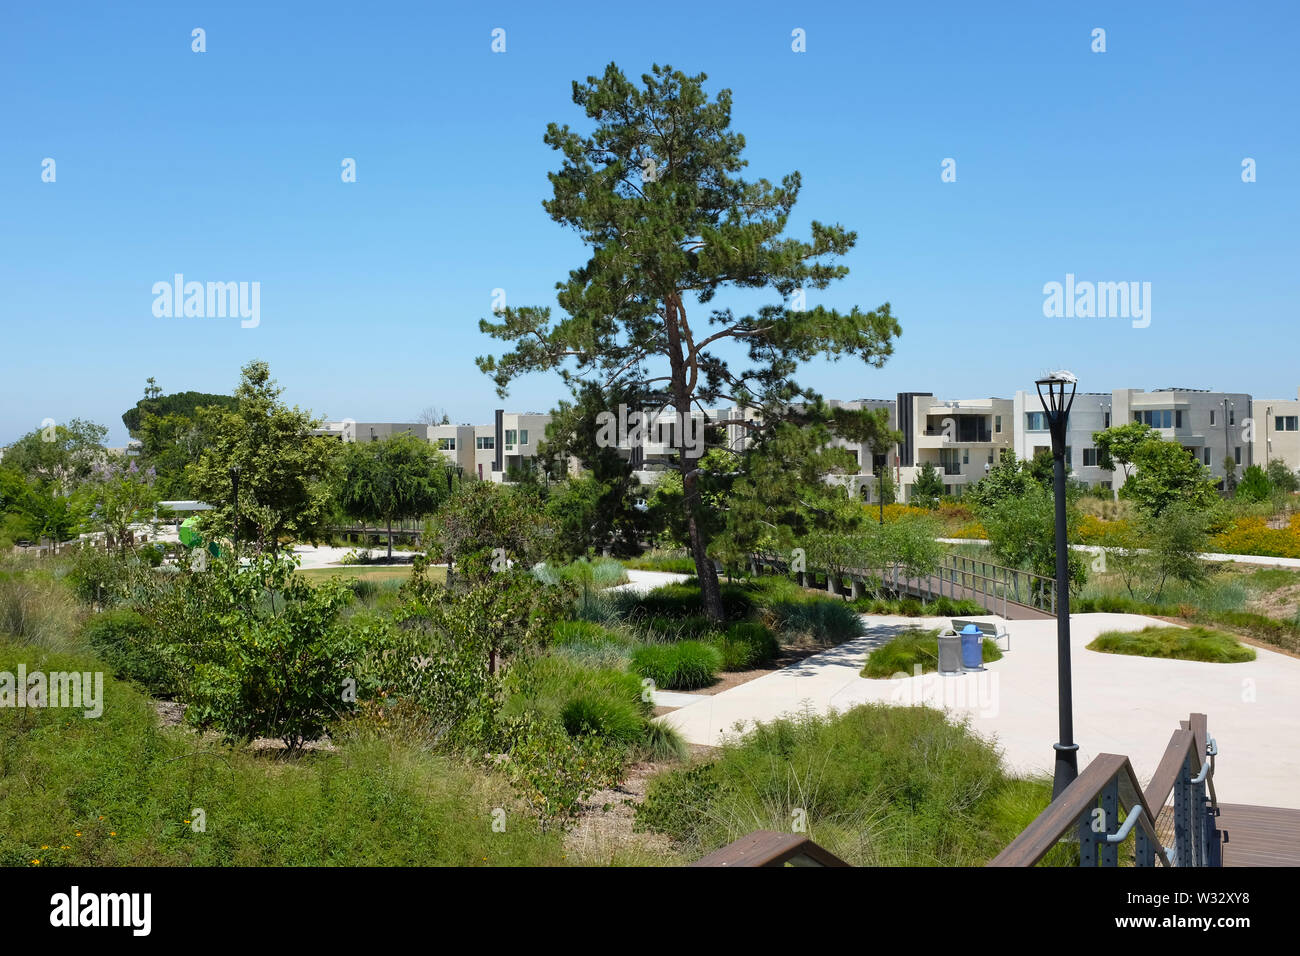 IRIVNE, CALIFORNIA - JULY 11, 2019: New homes border the Great Park Bosque, an open space area with bike and pedestrian trails with native landscaping - Stock Image